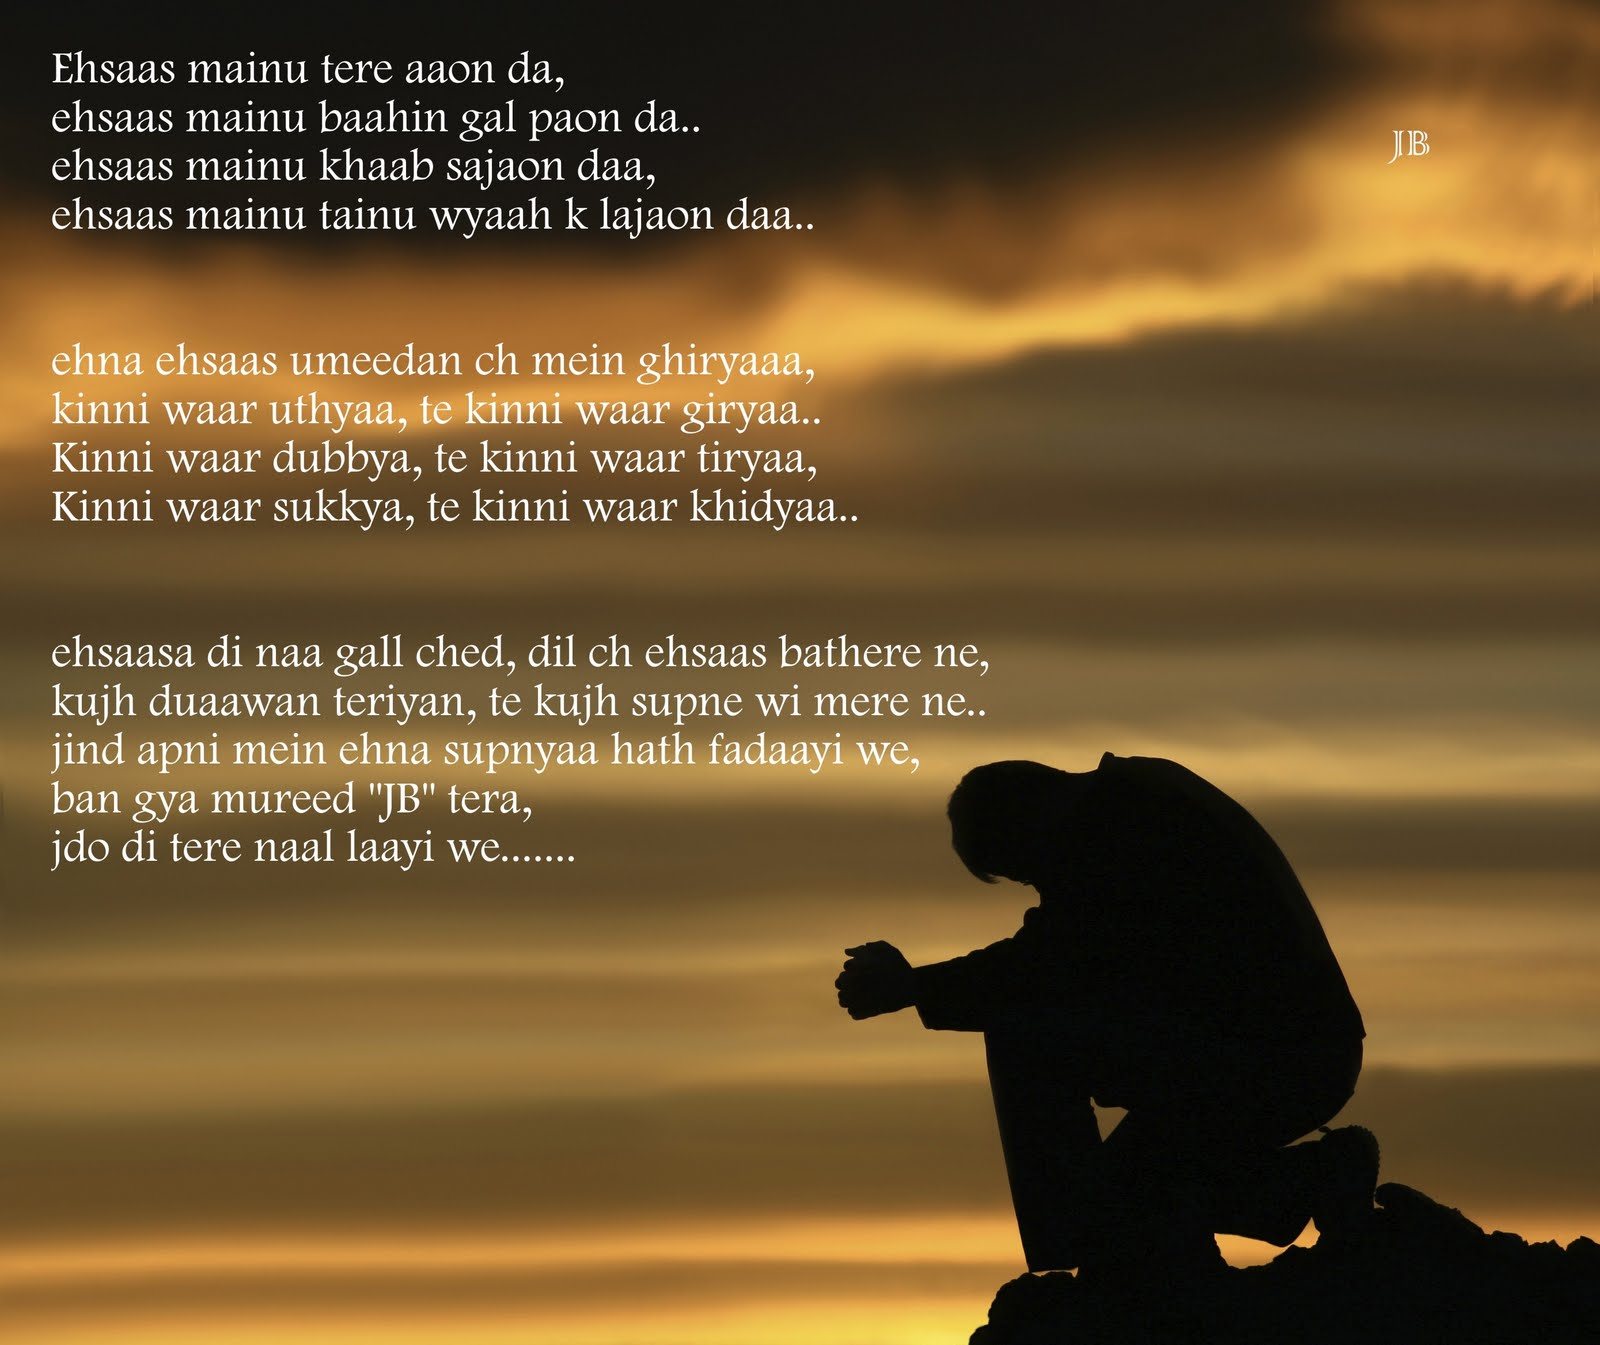 12/12/11 | Shayari Enjoy